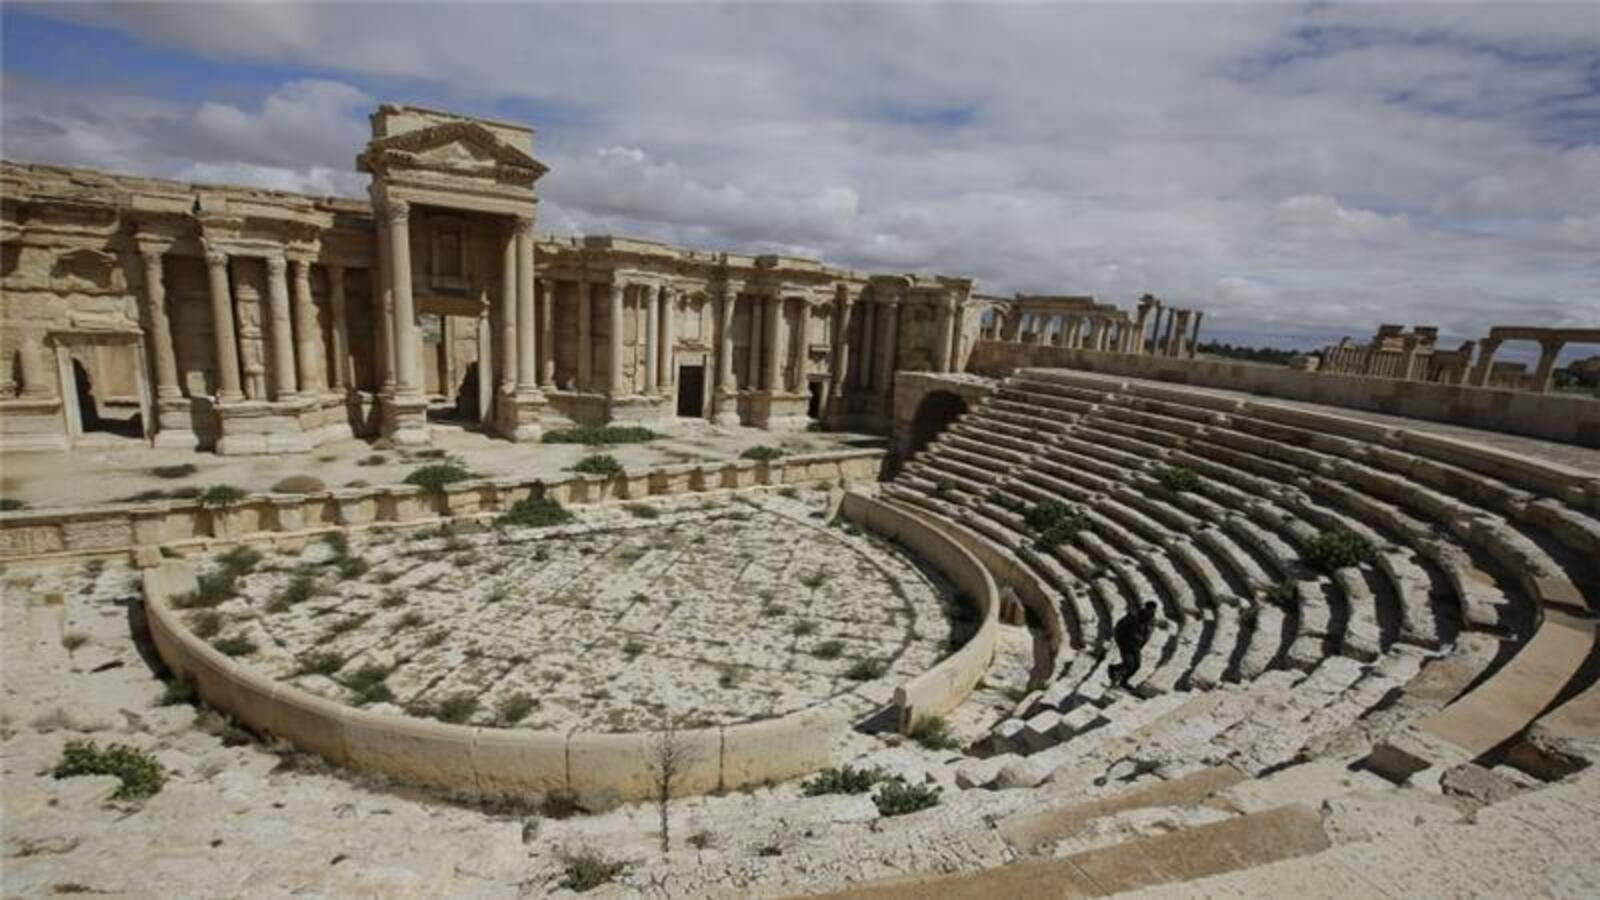 Before the war some 150,000 tourists a year visited Palmyra. (AFP/File)